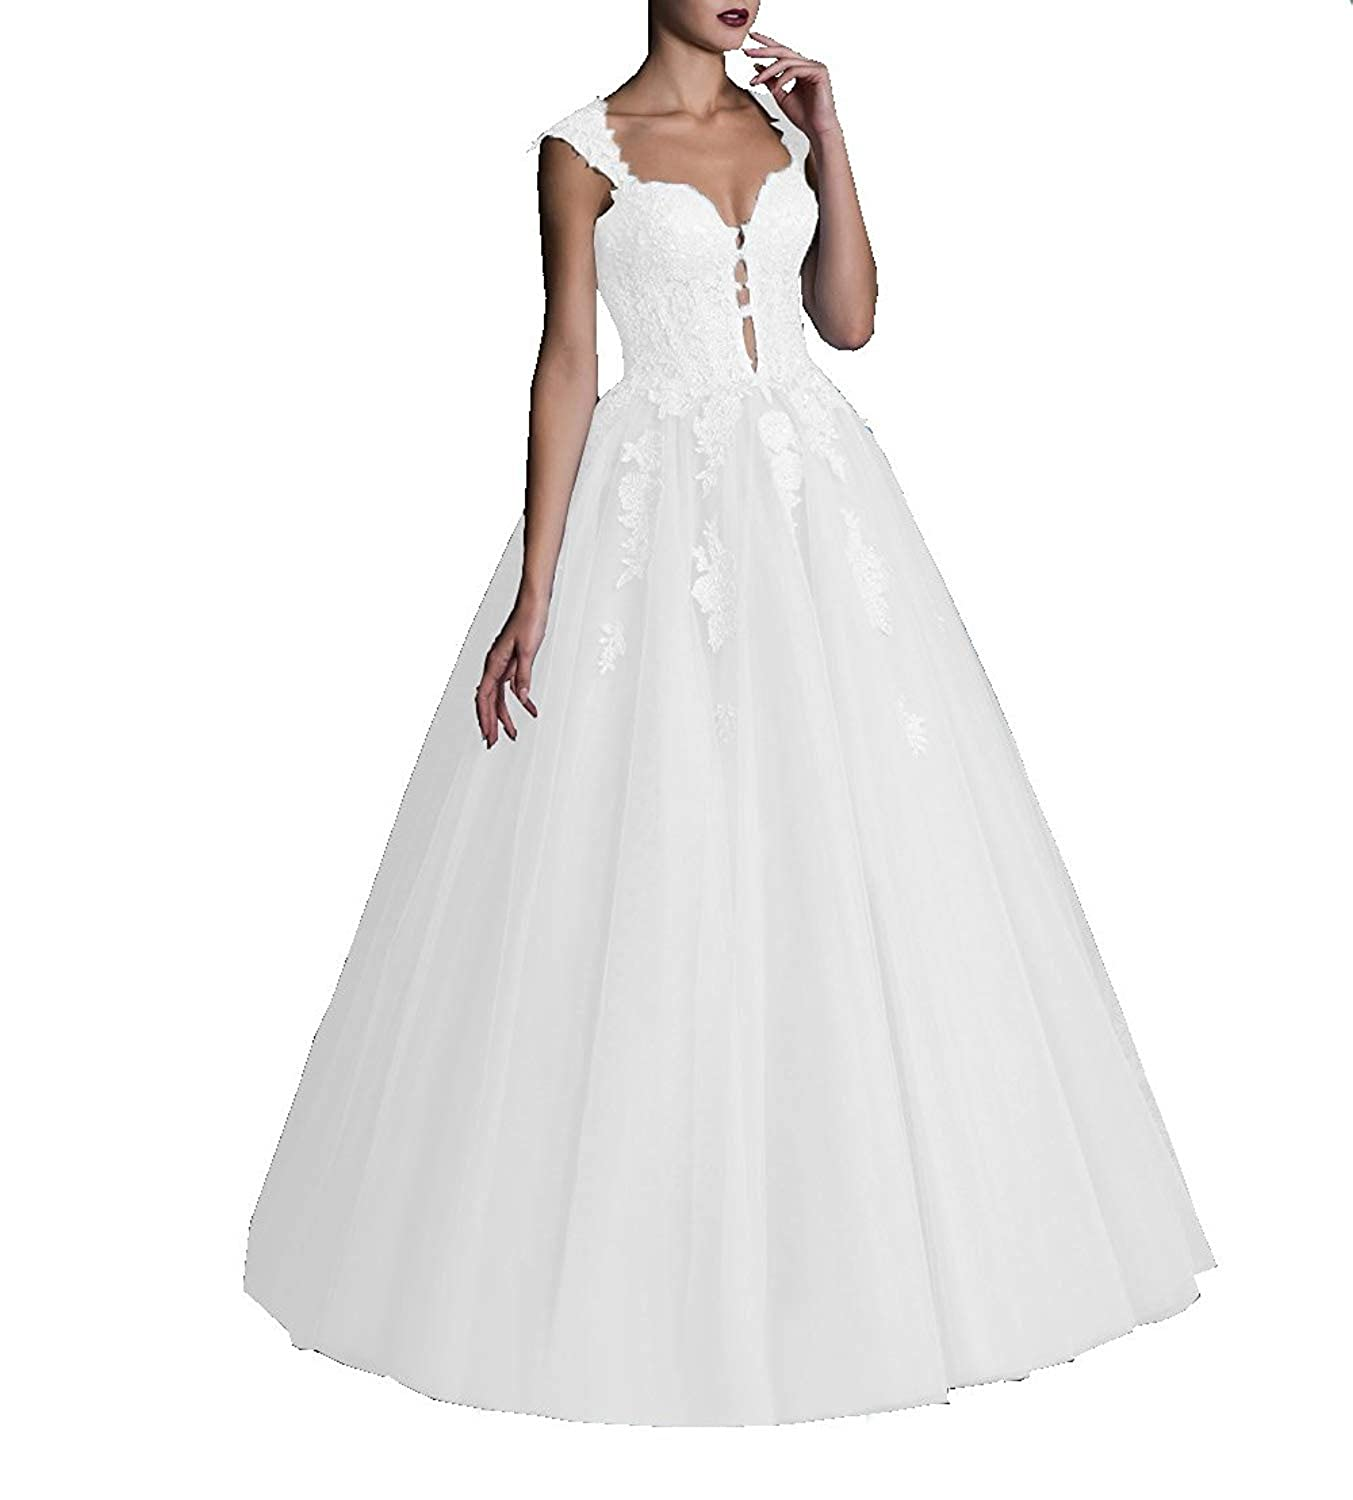 20KyleBird A-line Sweetheart Lace Appliques Tulle Quinceanera Dresses Prom Evening Ball Gowns for Women Formal